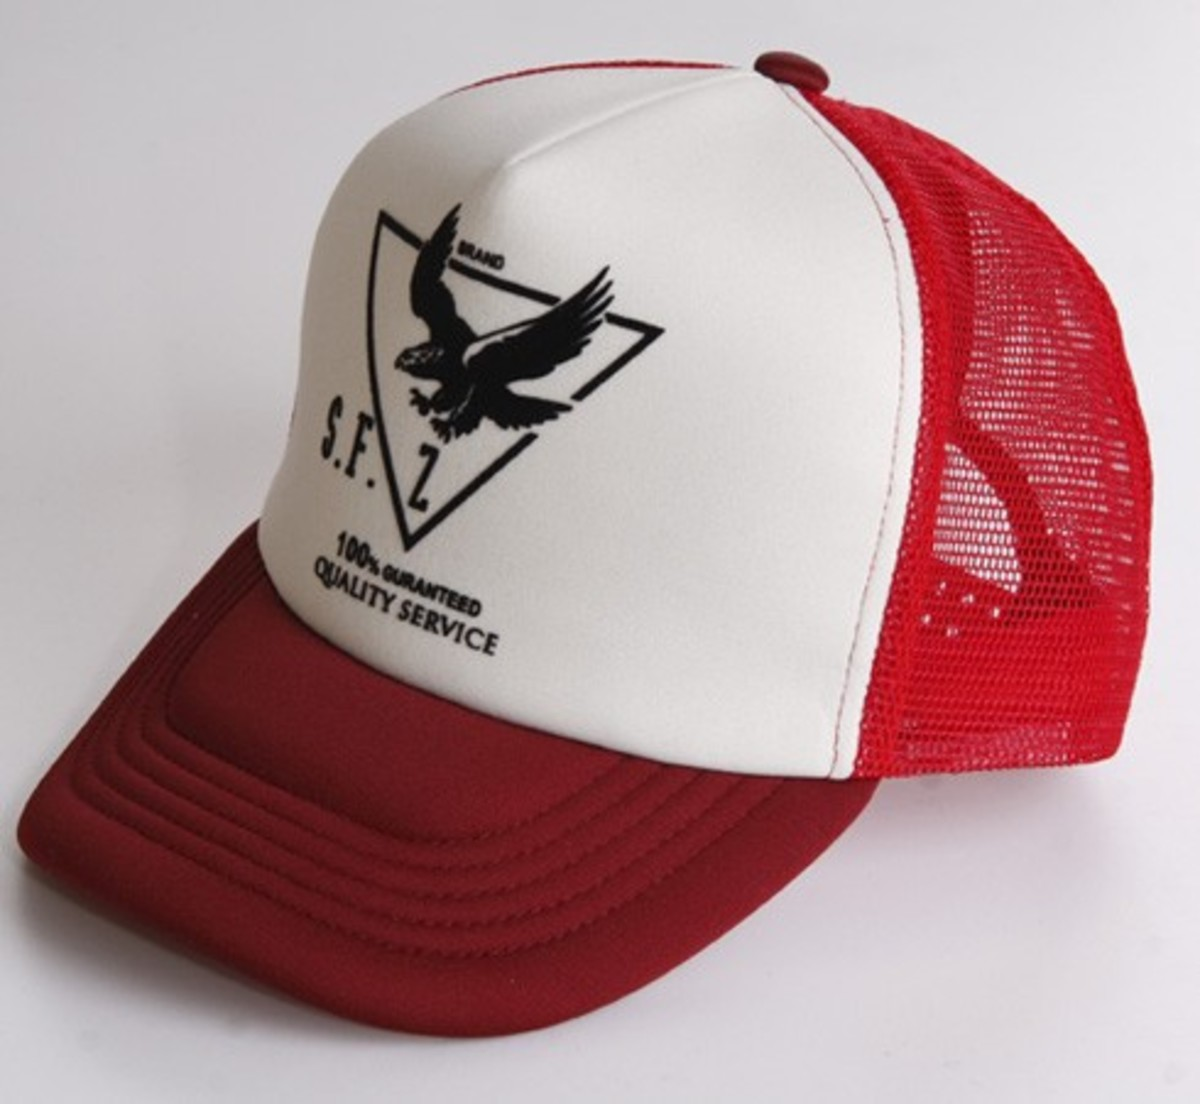 freshness-trucker-red-side.jpg